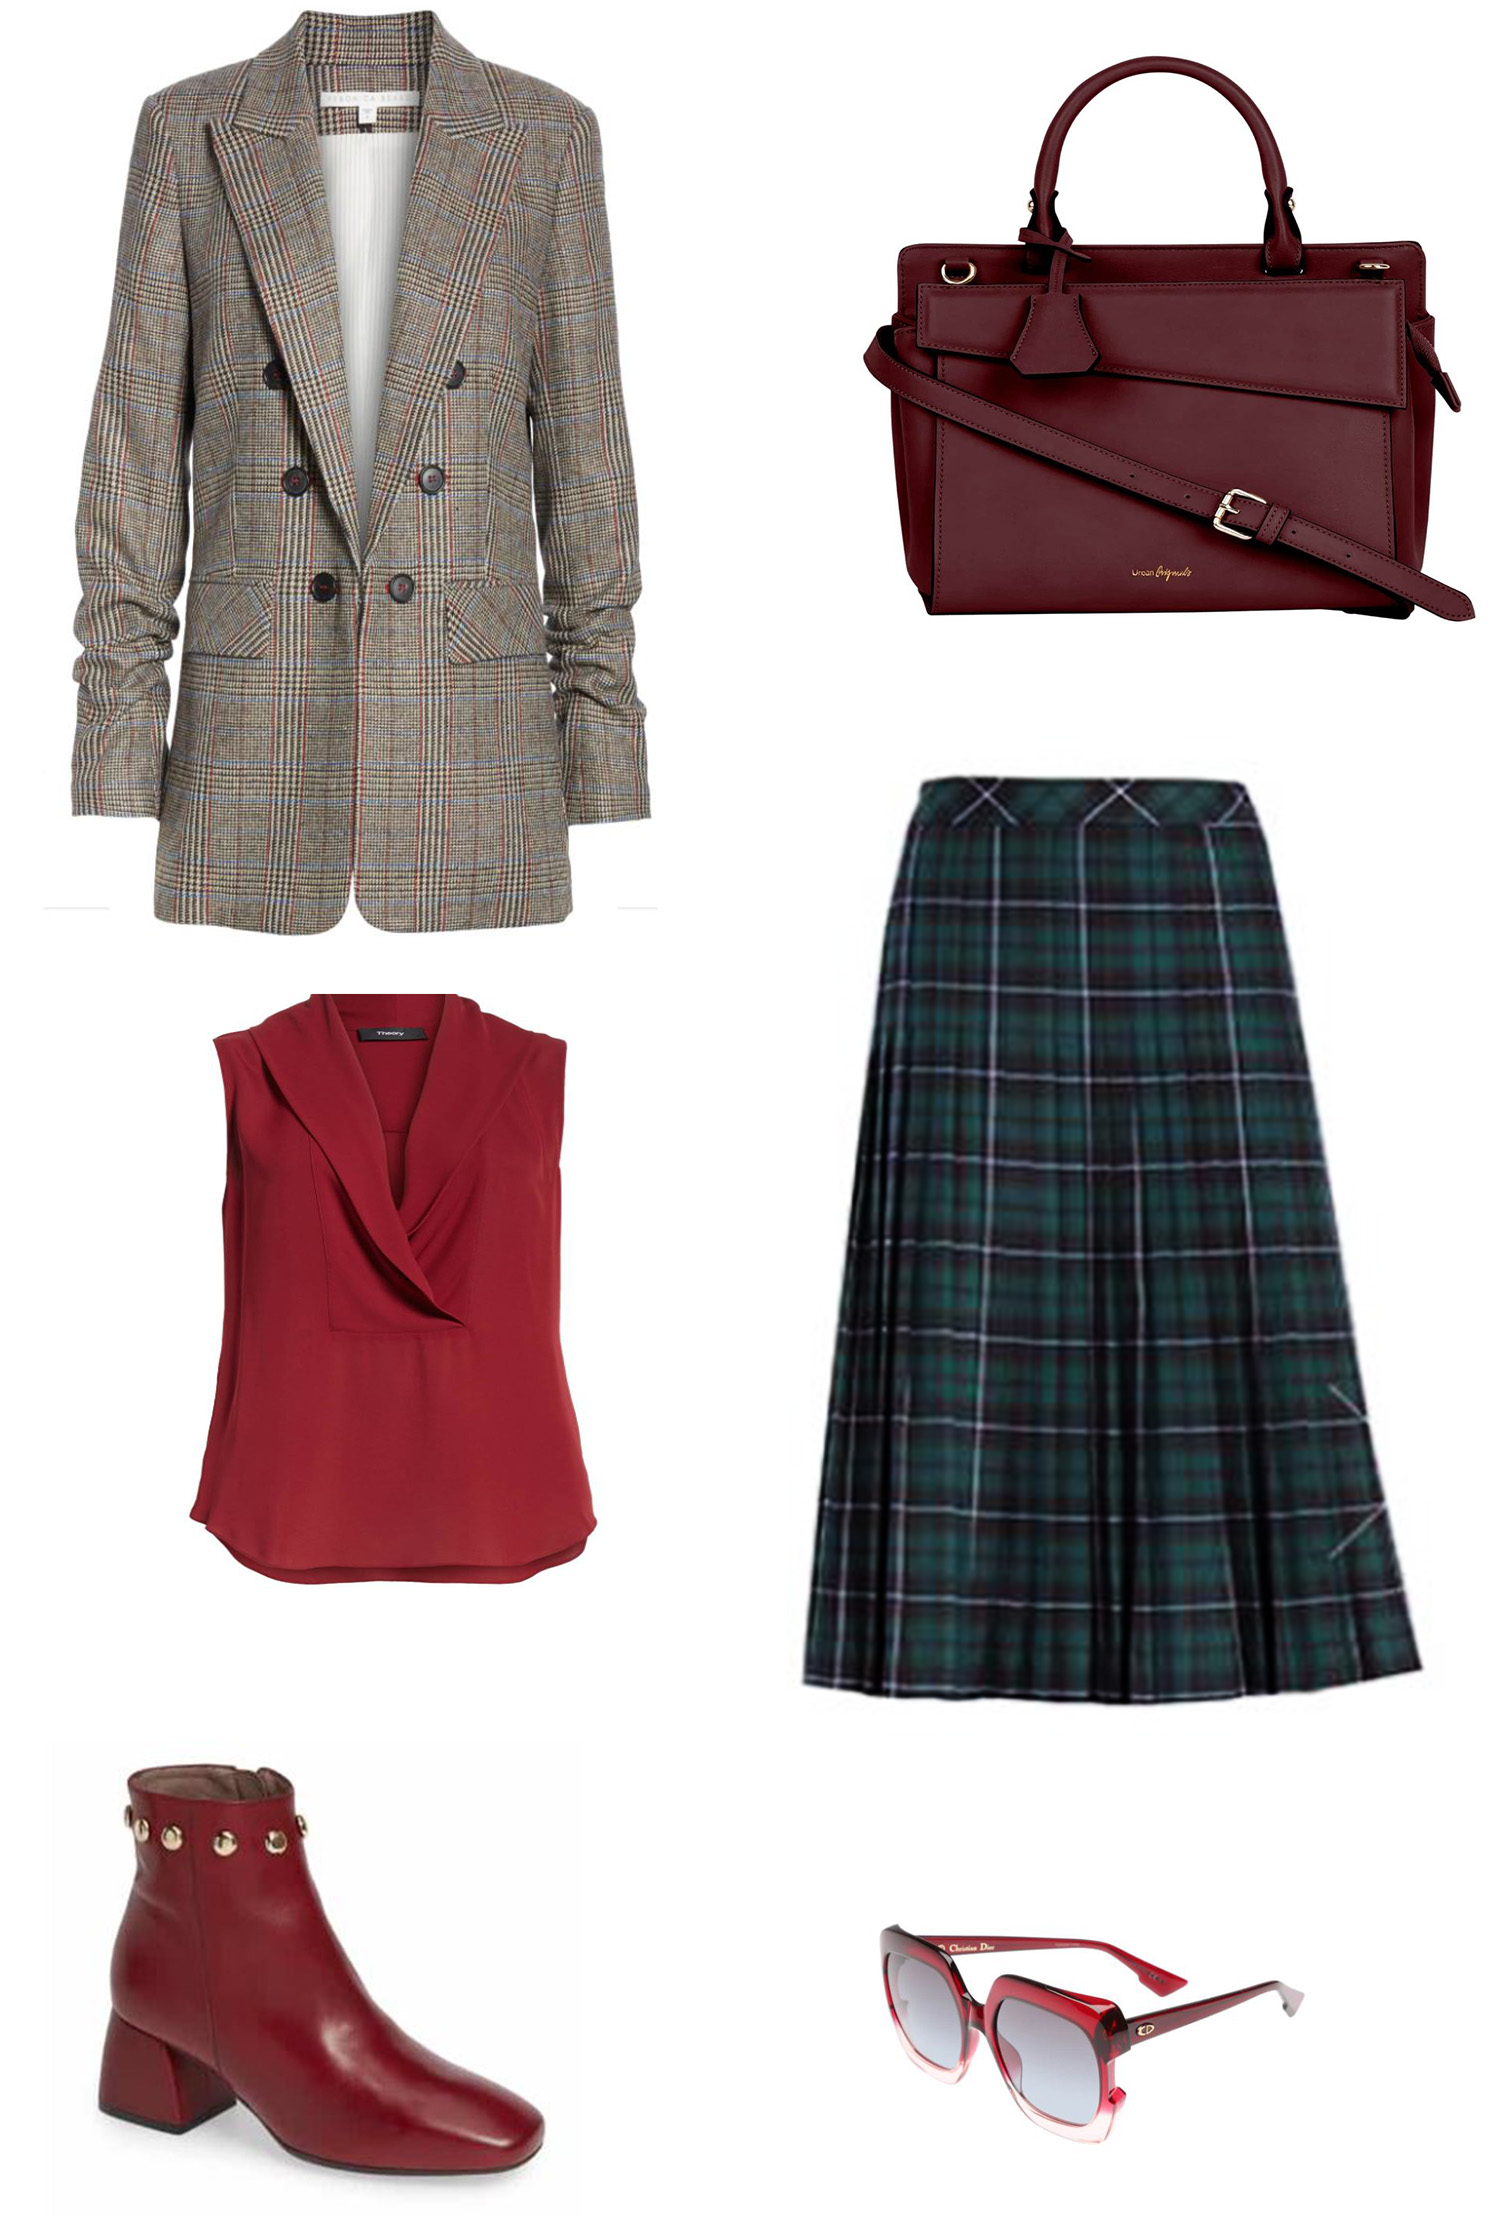 Nordstrom Fall Picks & $1000 Gift Card Giveaway